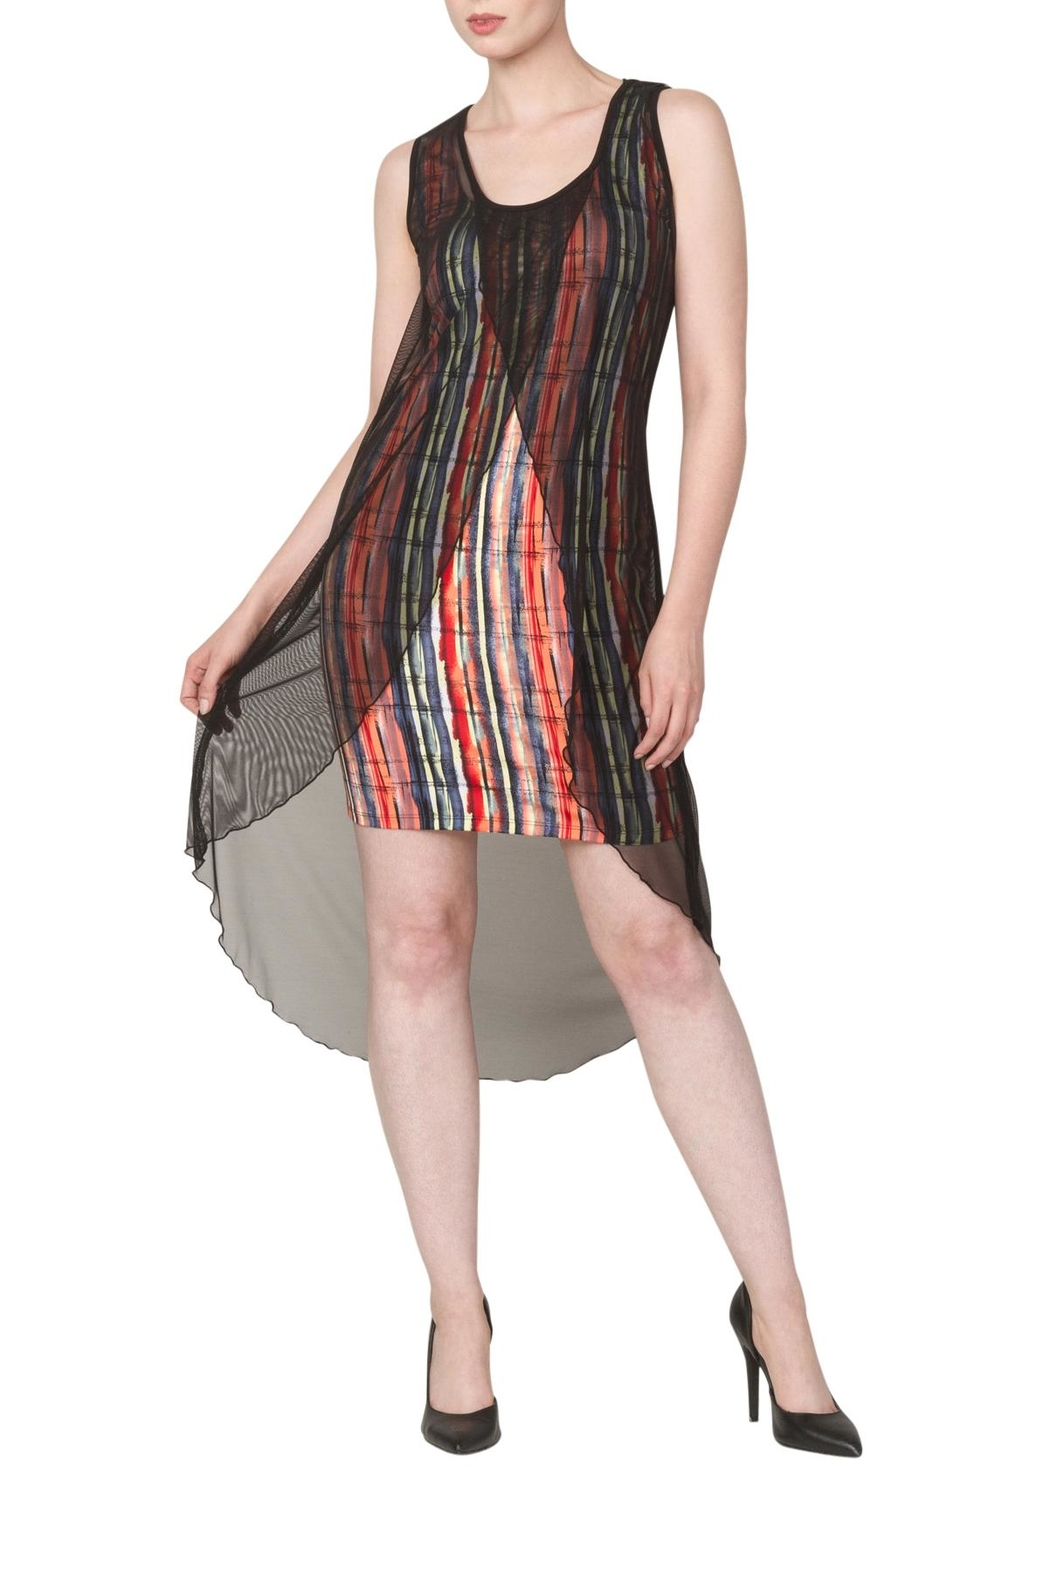 Yvonne Marie Lola Multi Color Dress - Front Cropped Image